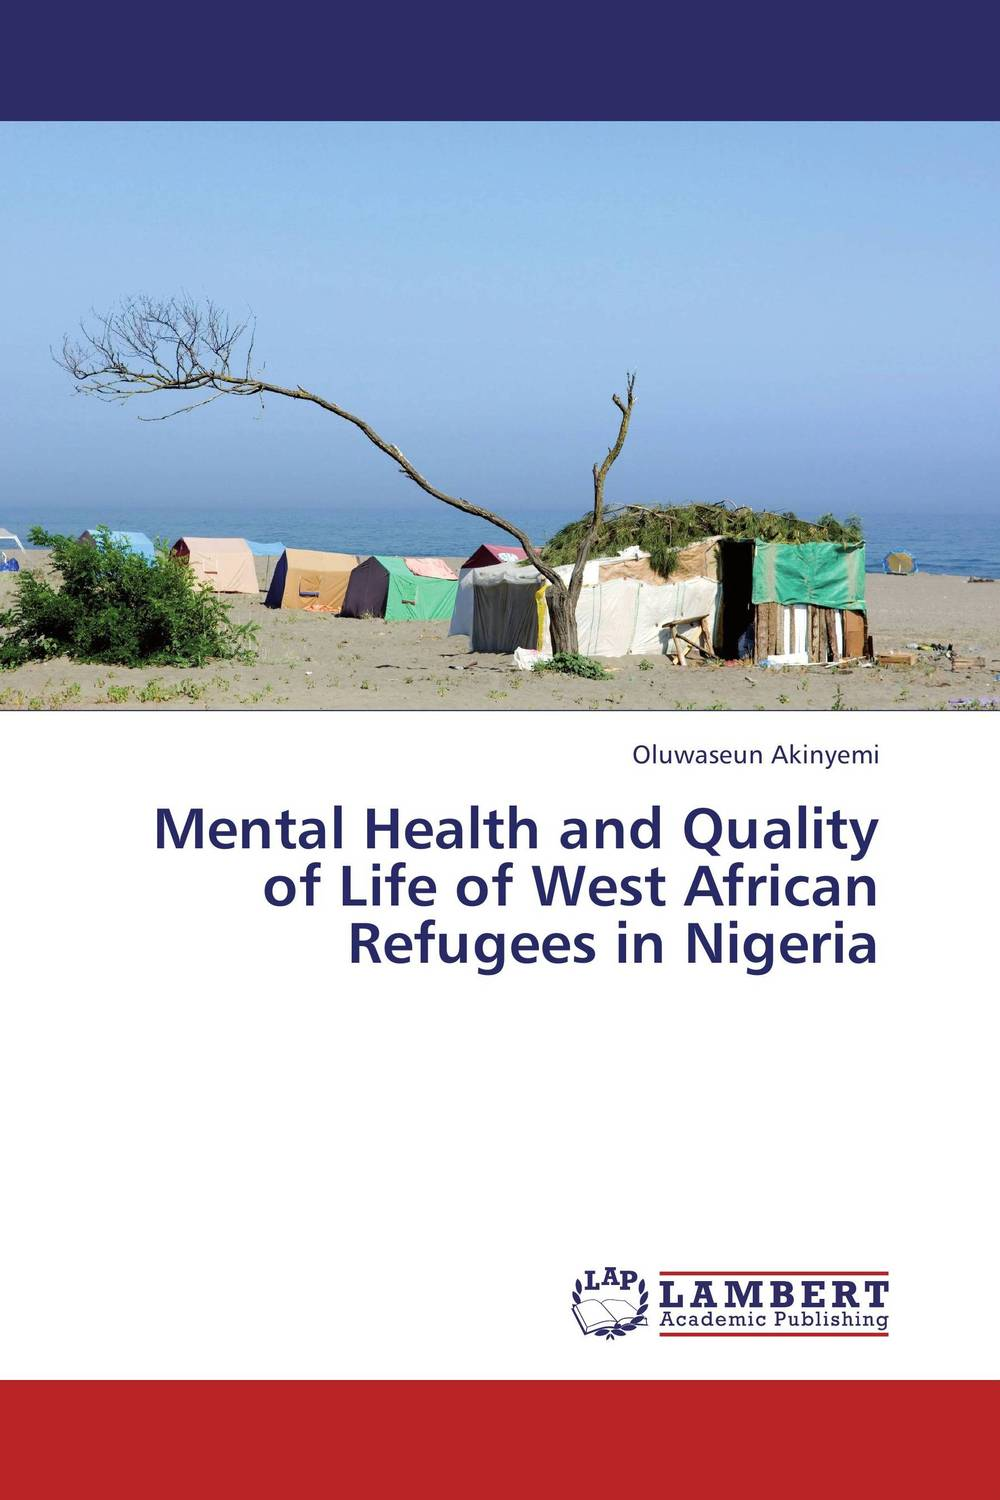 все цены на Mental Health and Quality of Life of West African Refugees in Nigeria